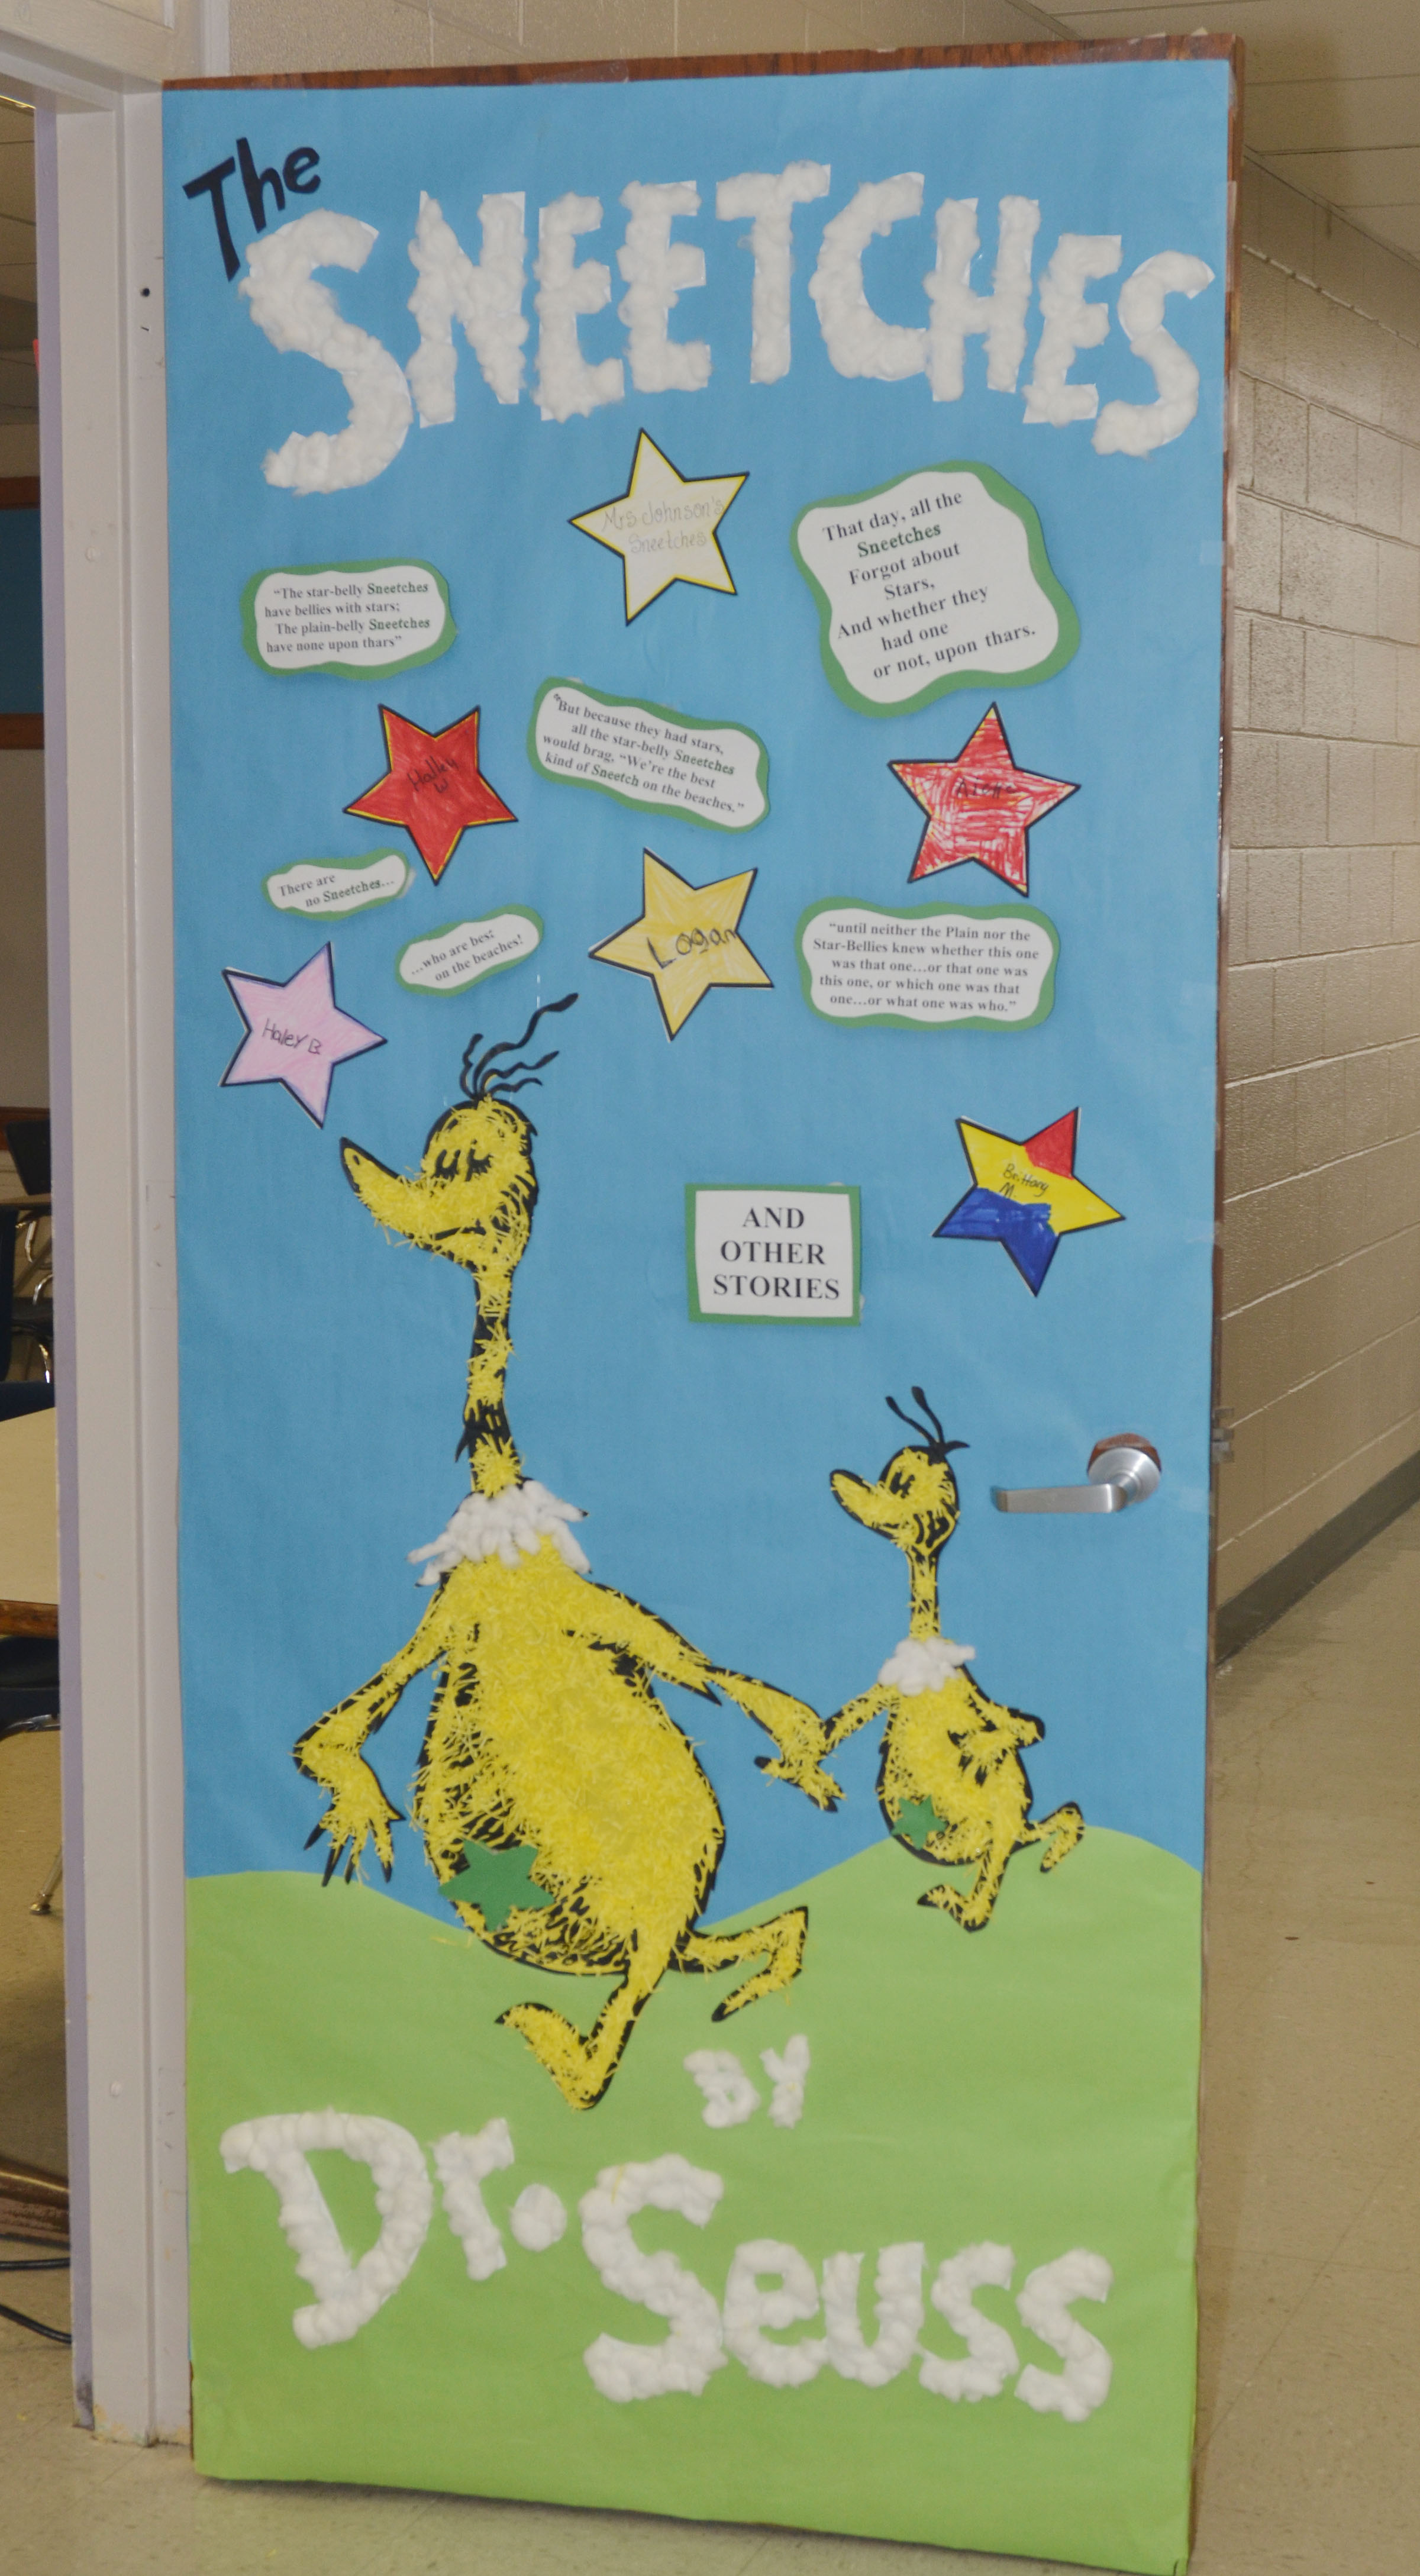 CMS fourth-grade teacher Kaye Agathen won second place in the Dr. Seuss door decorating contest. & CMS teachers compete in Dr. Seuss door decorating contest ...